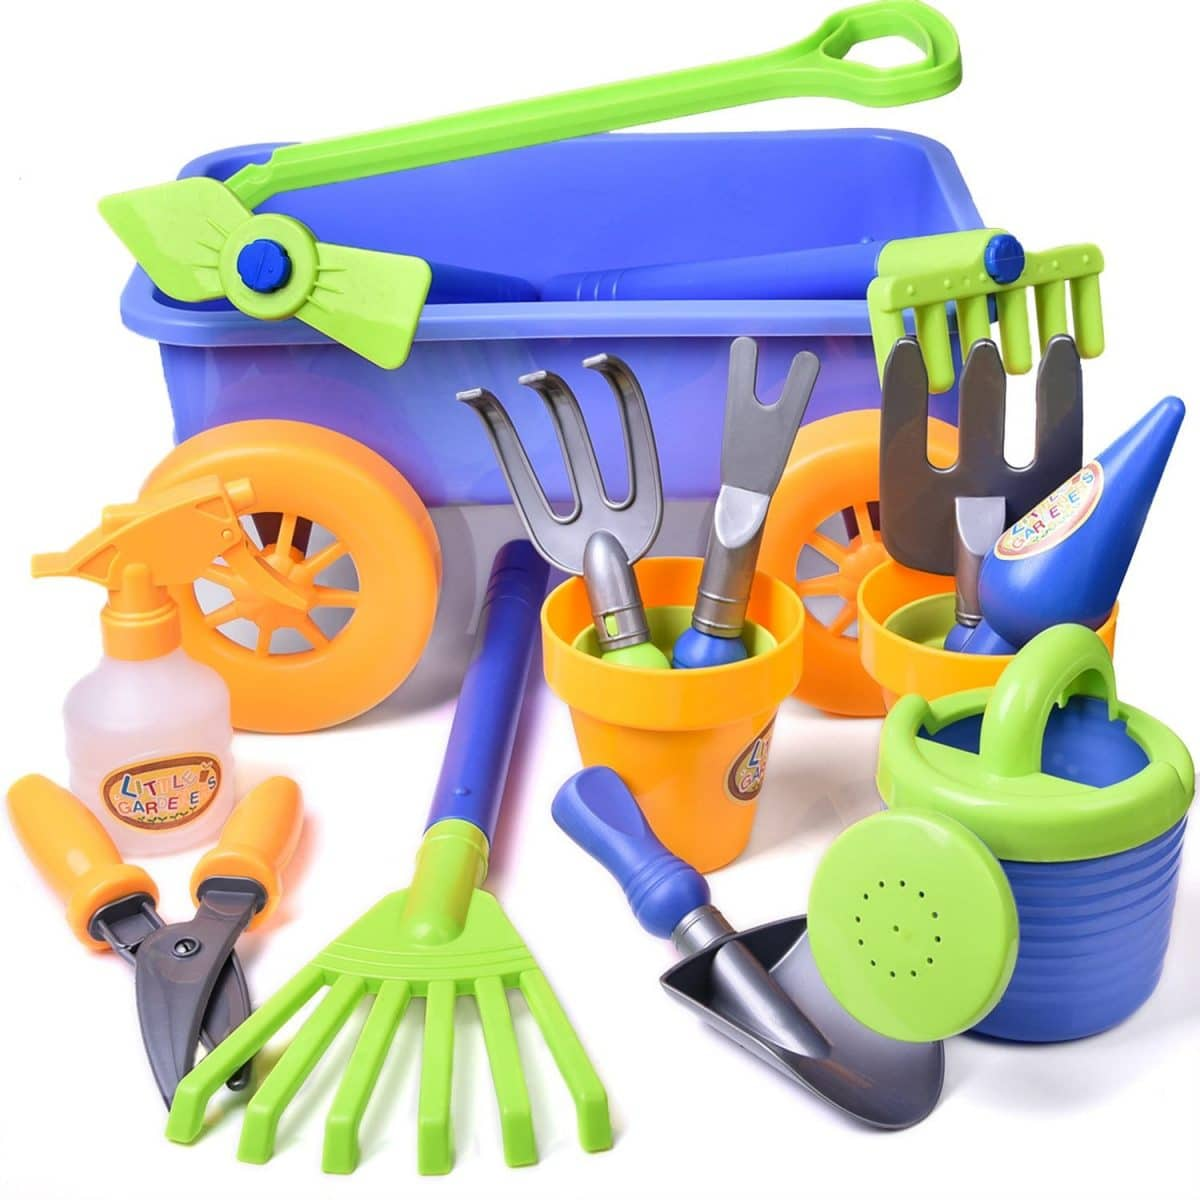 Garden Tools for children Toy gift present work in garden children